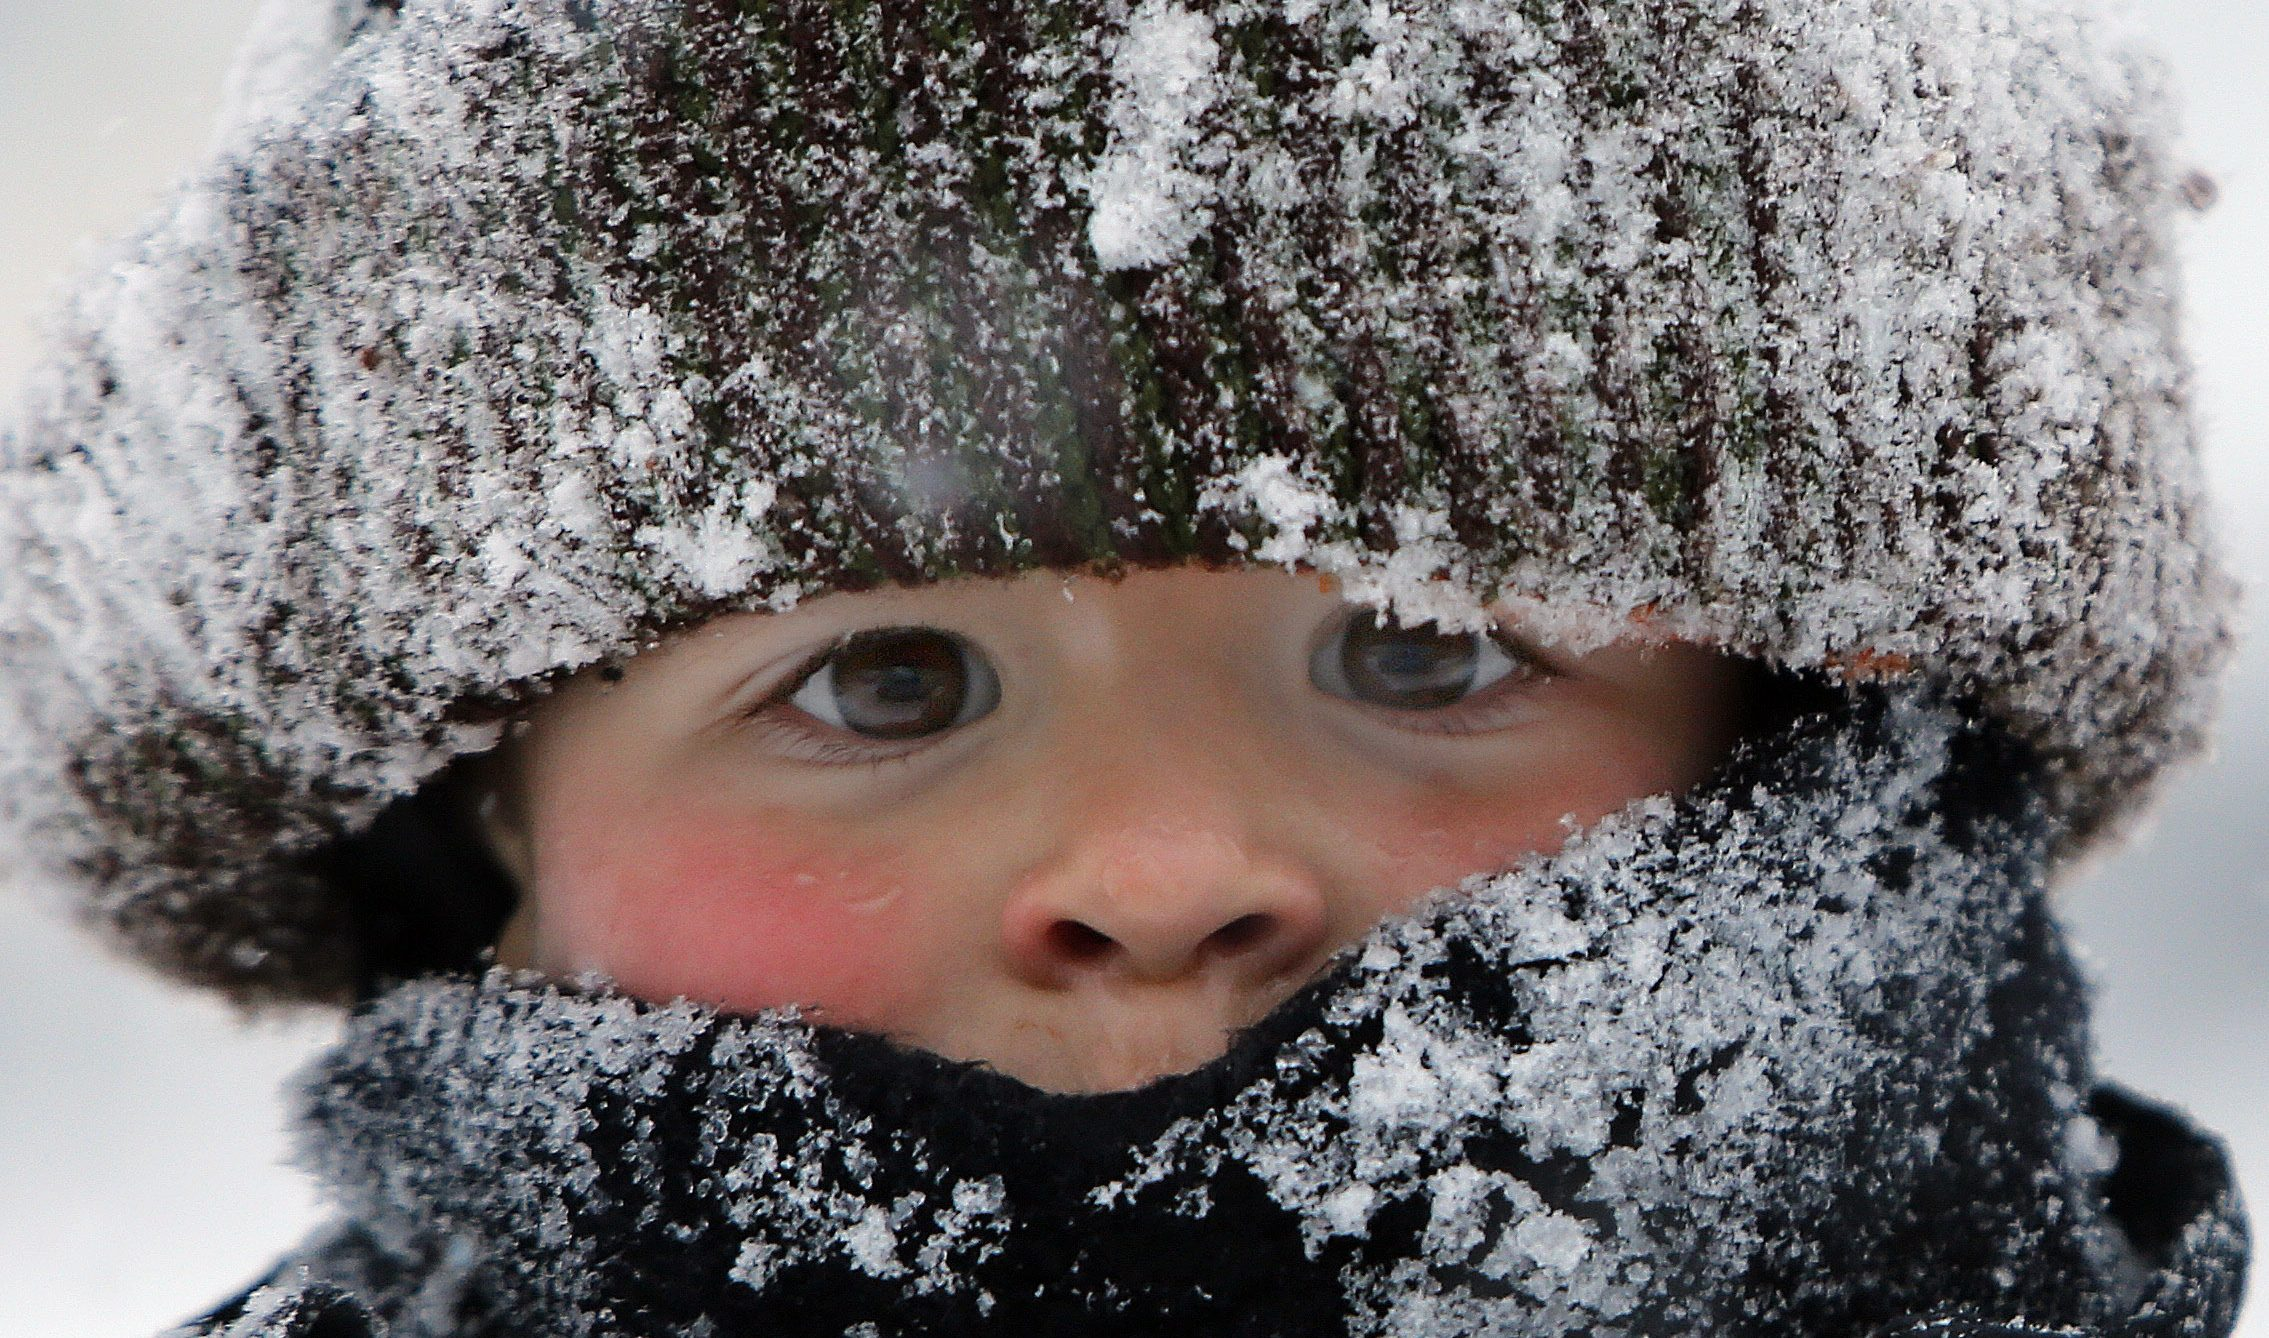 Will Annicchiarico is bundled up as he plays in the snow following a snowstorm Tuesday, Jan. 27, 2015, in Concord, N.H. A storm packing blizzard conditions spun up the East Coast early Tuesday, pounding parts of coastal New Jersey northward through Maine with high winds and heavy snow. (AP Photo/Jim Cole)